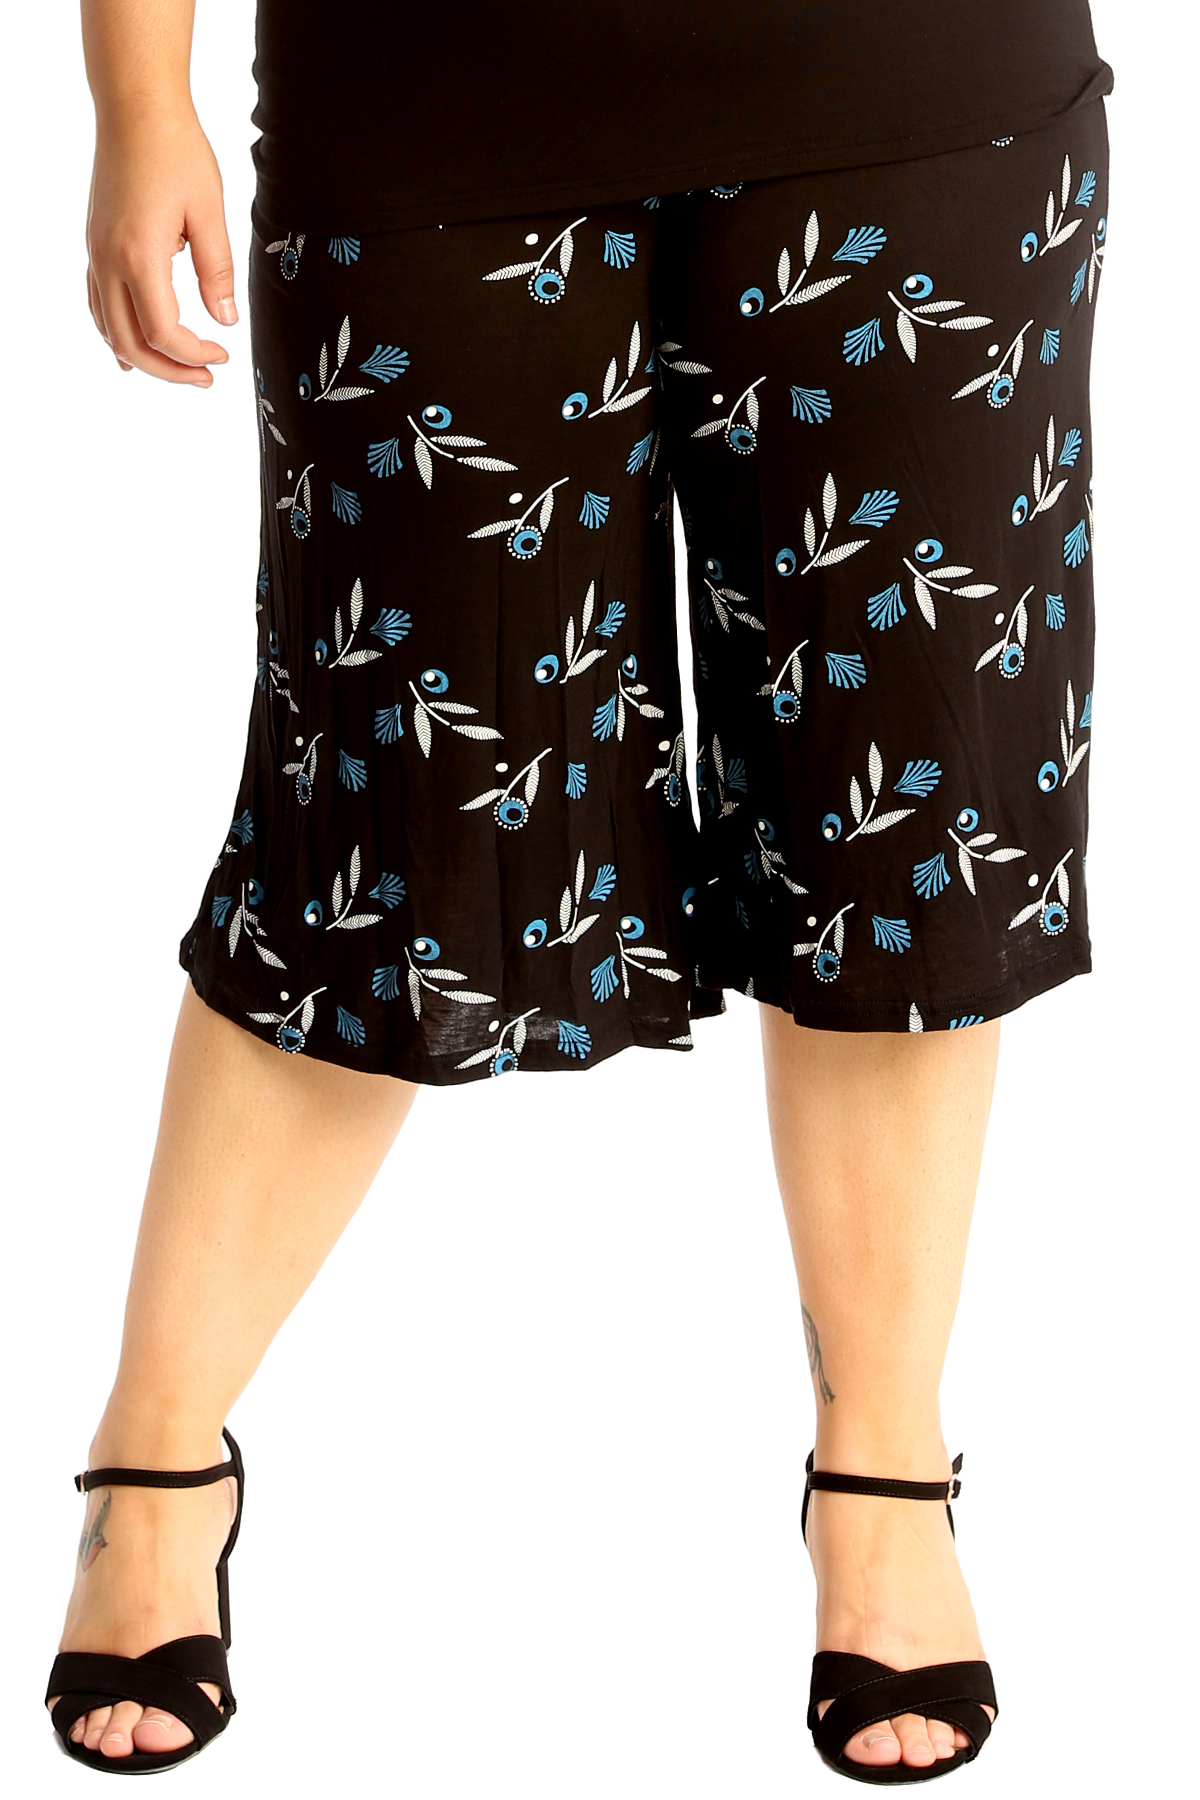 Womens Plus Size Pleated Elasticated Floral Print Culottes//3 Qtr Shorts 8-30